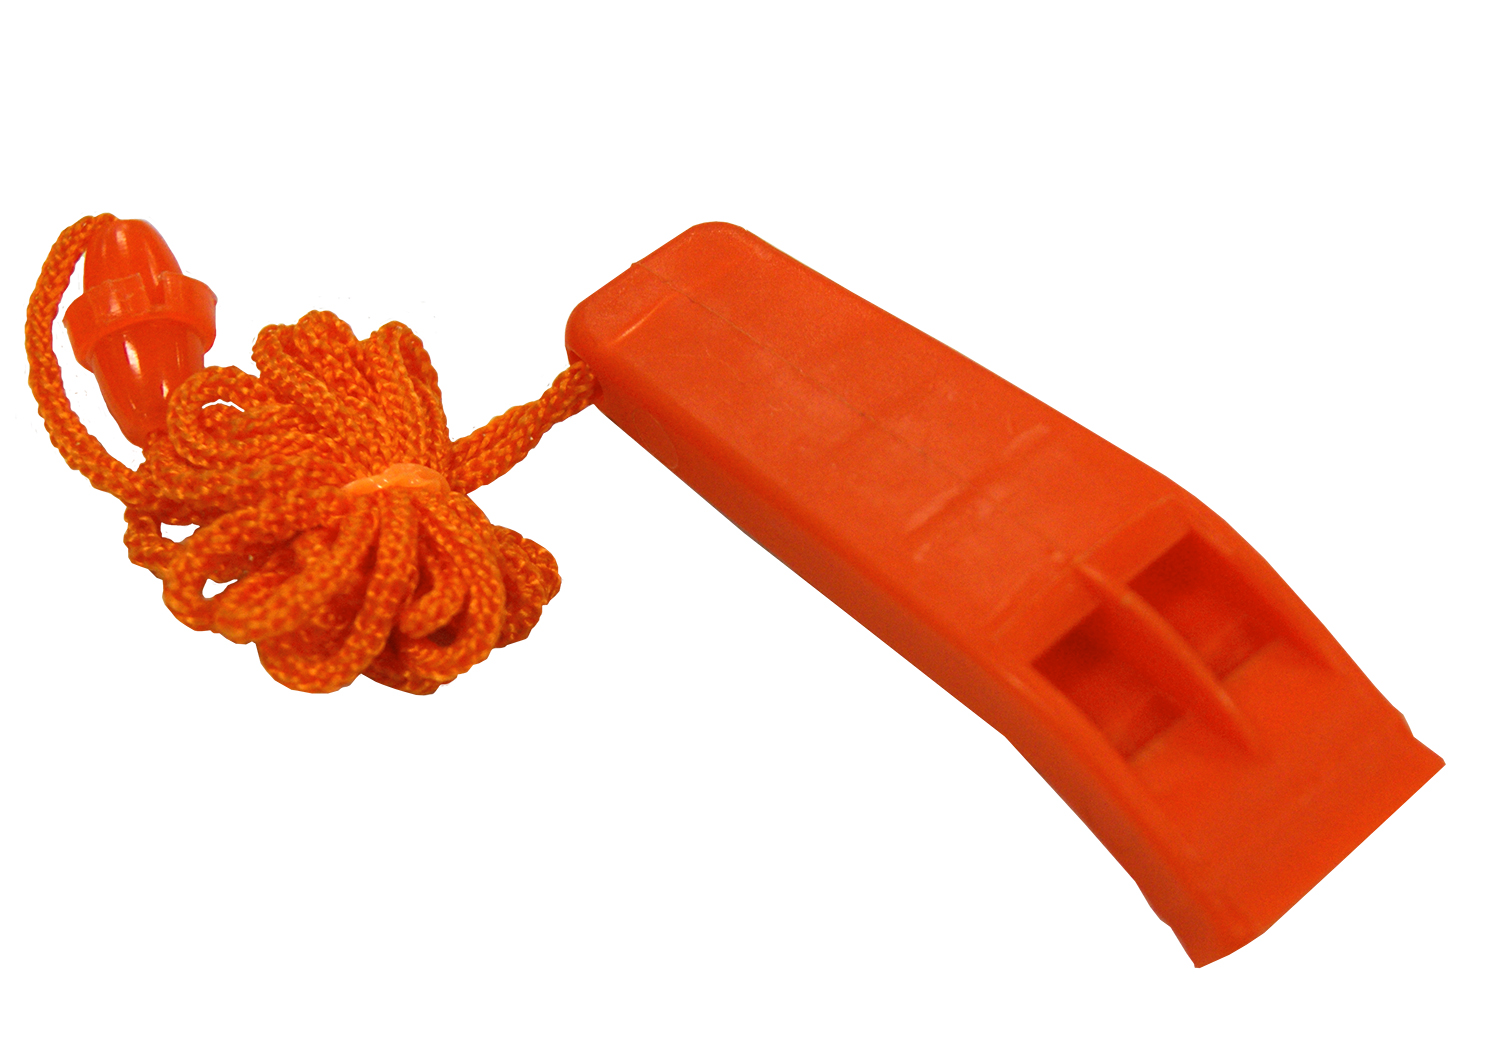 20-310-019 - UST Hear-Me Whistle, Orange